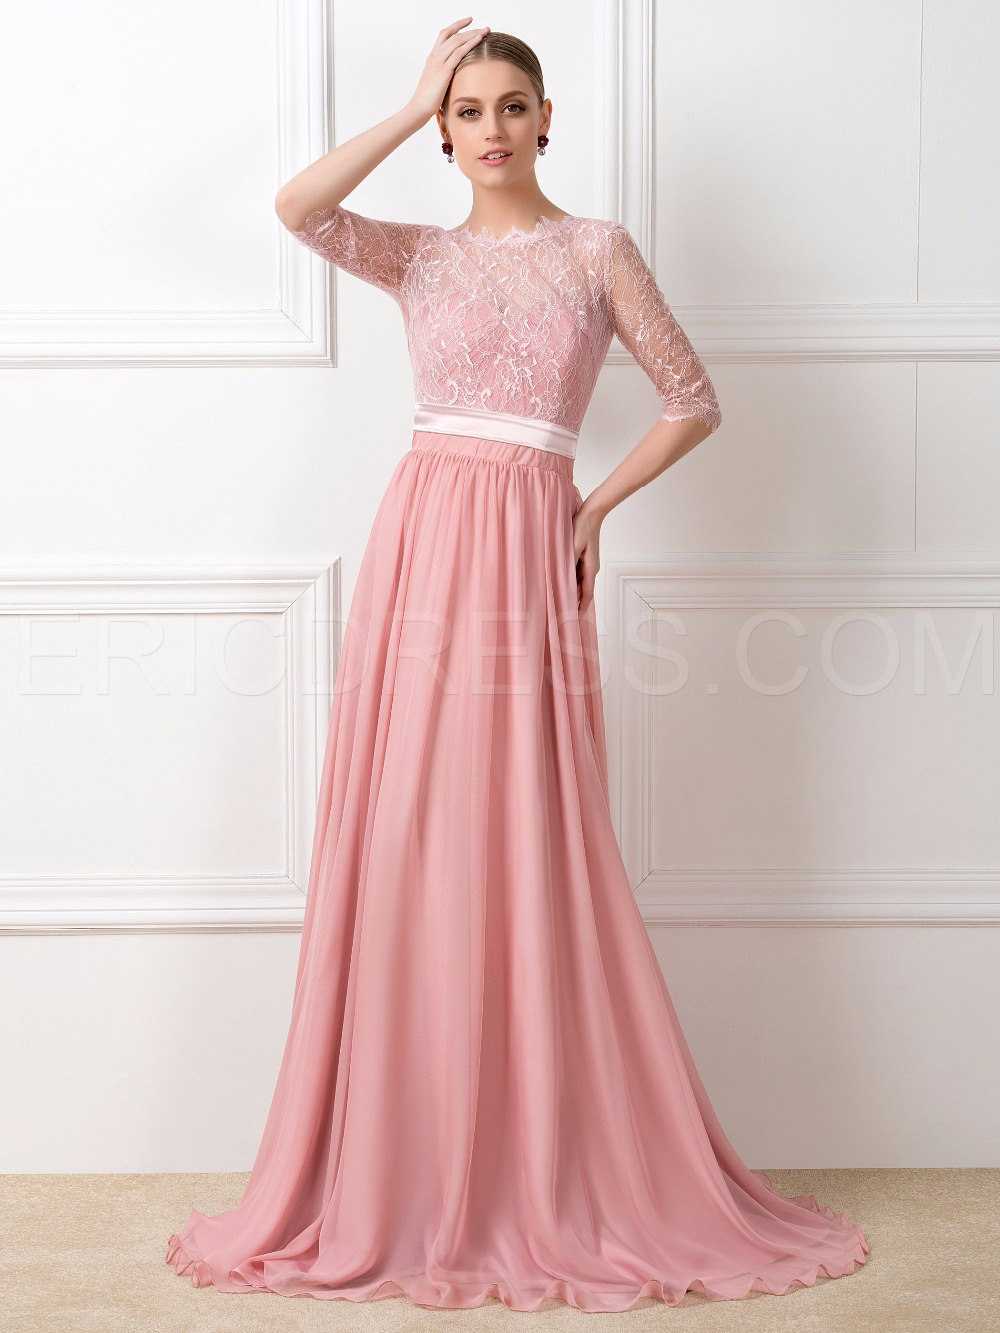 Modest lace peach long chiffon half sleeve dresses for bridesmaid modest lace peach long chiffon half sleeve dresses for bridesmaid dresses with sleeves in bridesmaid dresses from weddings events on aliexpress ombrellifo Image collections